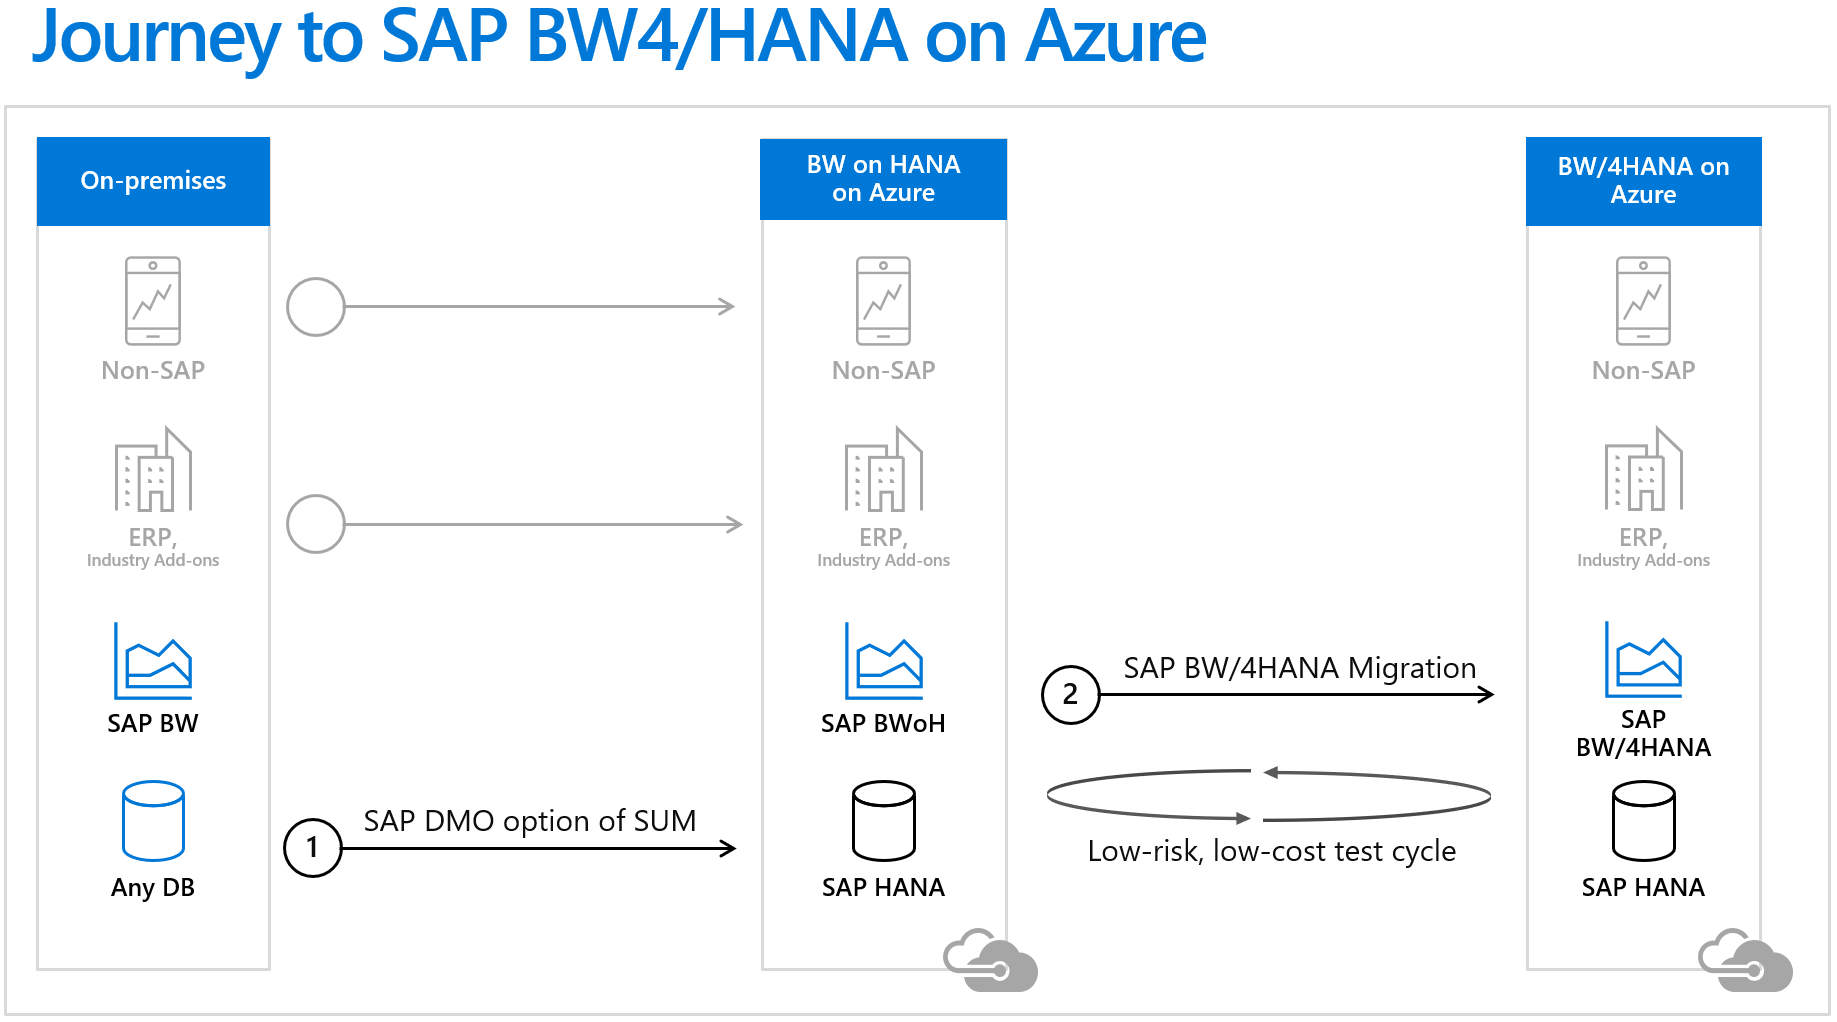 SAP BW on HANA and BW 4HANA migrations